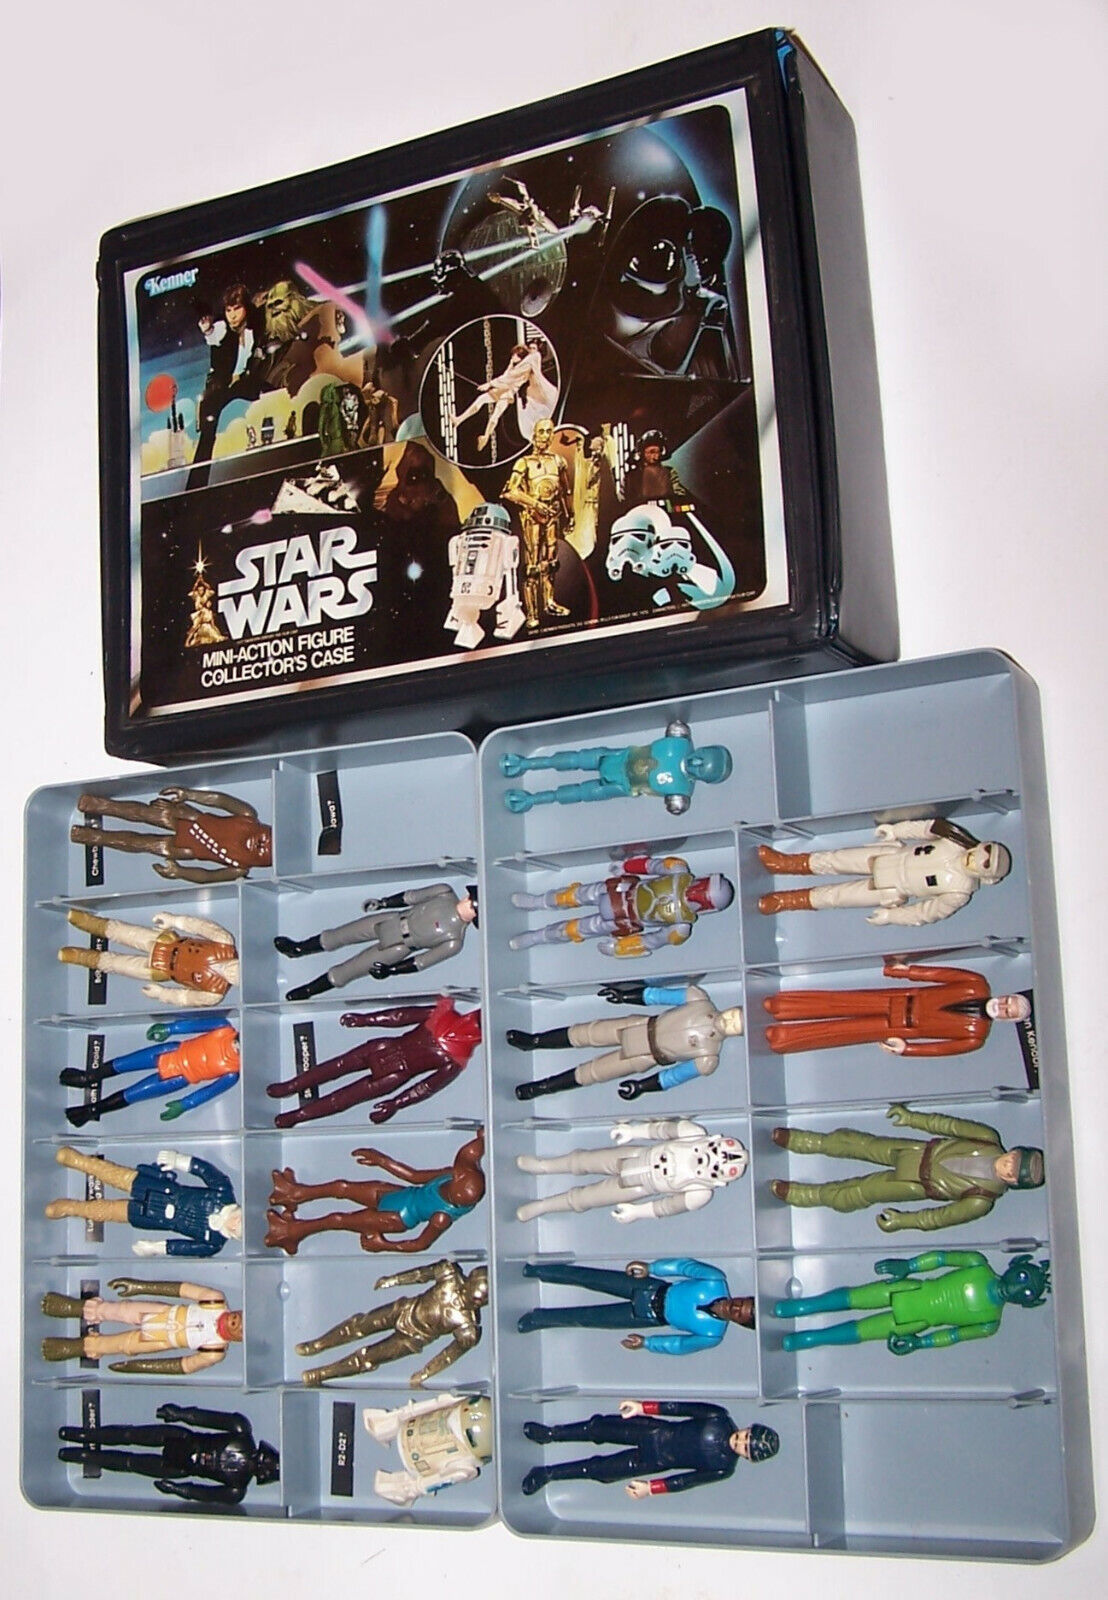 Vintage 1978 Star Wars Action Figure Collectors Case with 21 Kenner Figures